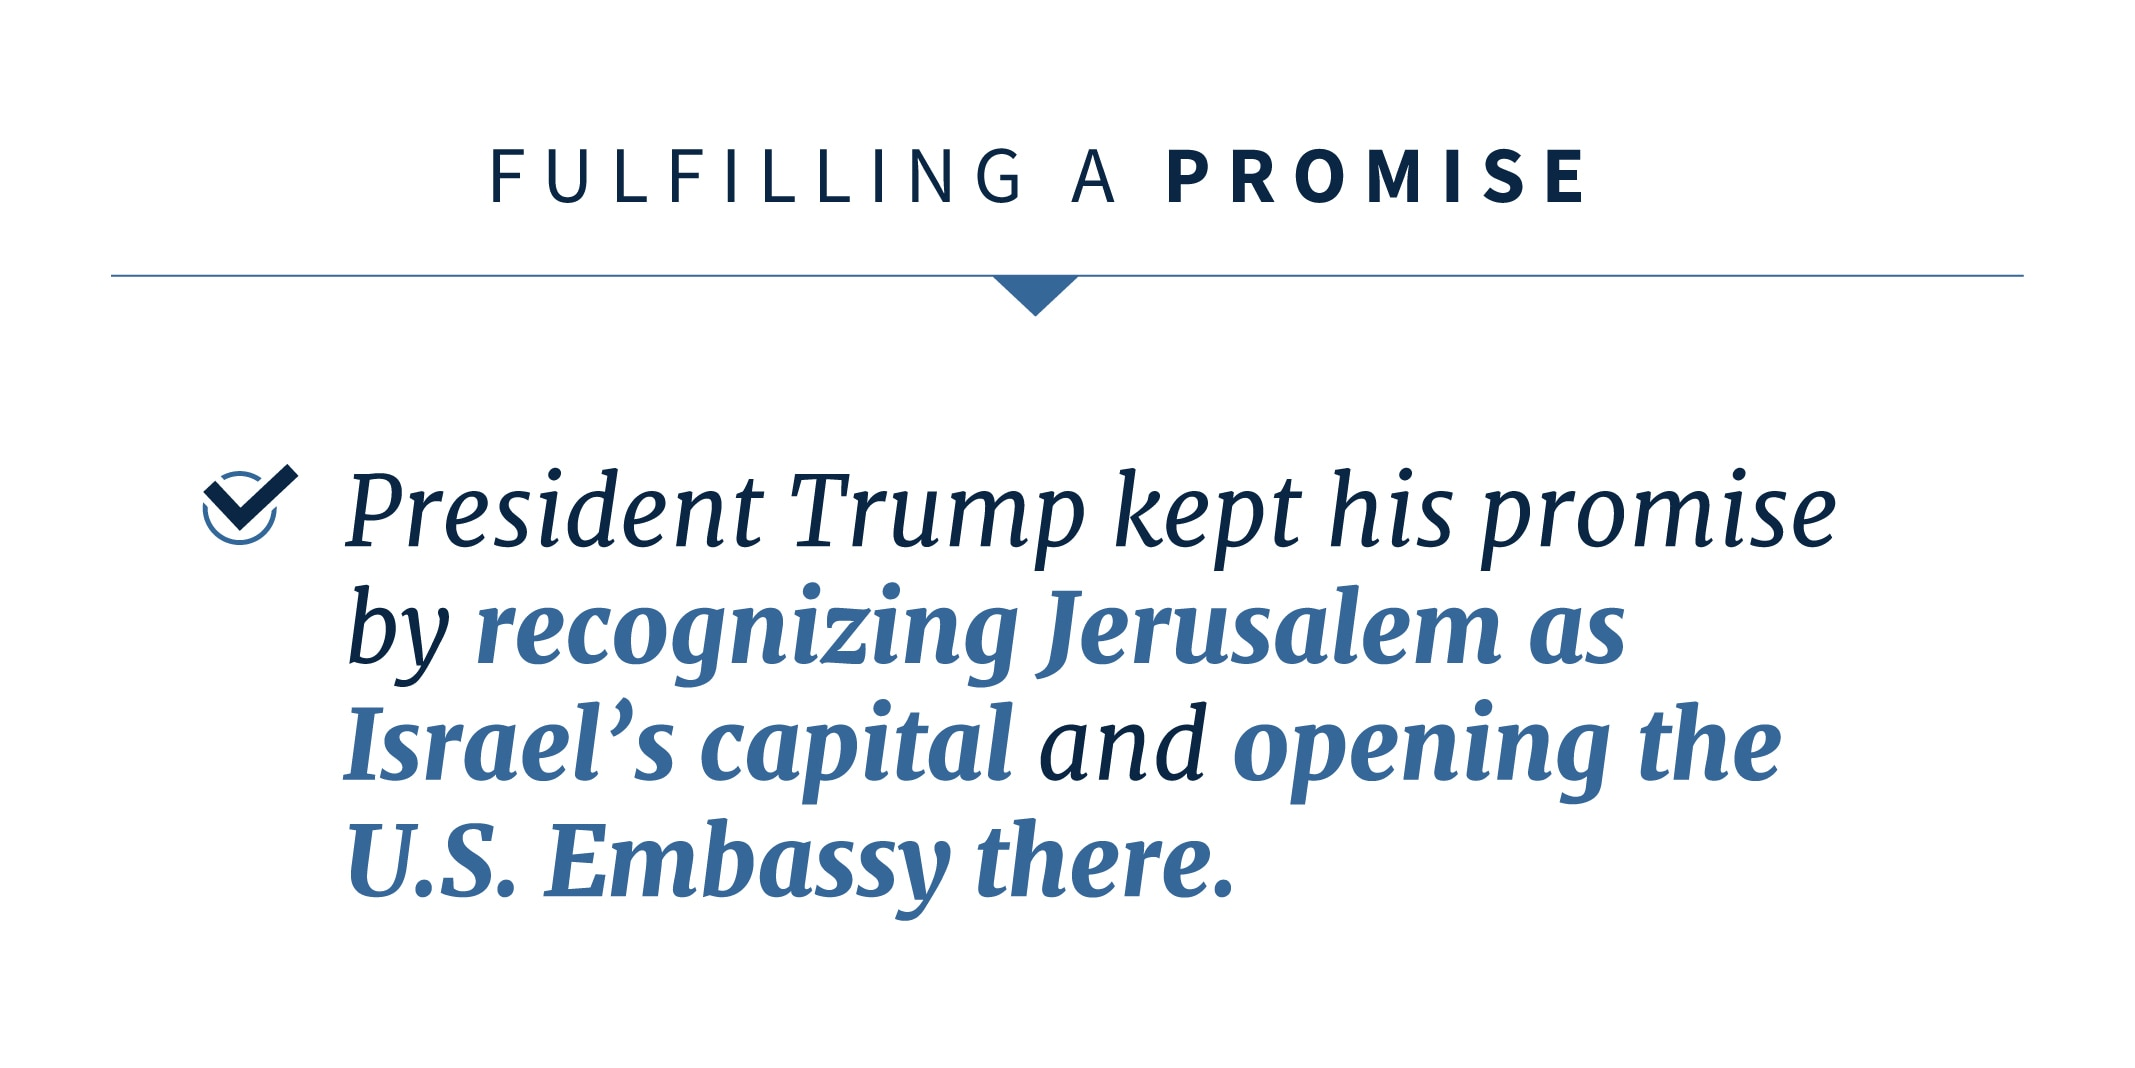 Statement on President Trump's fulfillment of his promise (State Dept.)